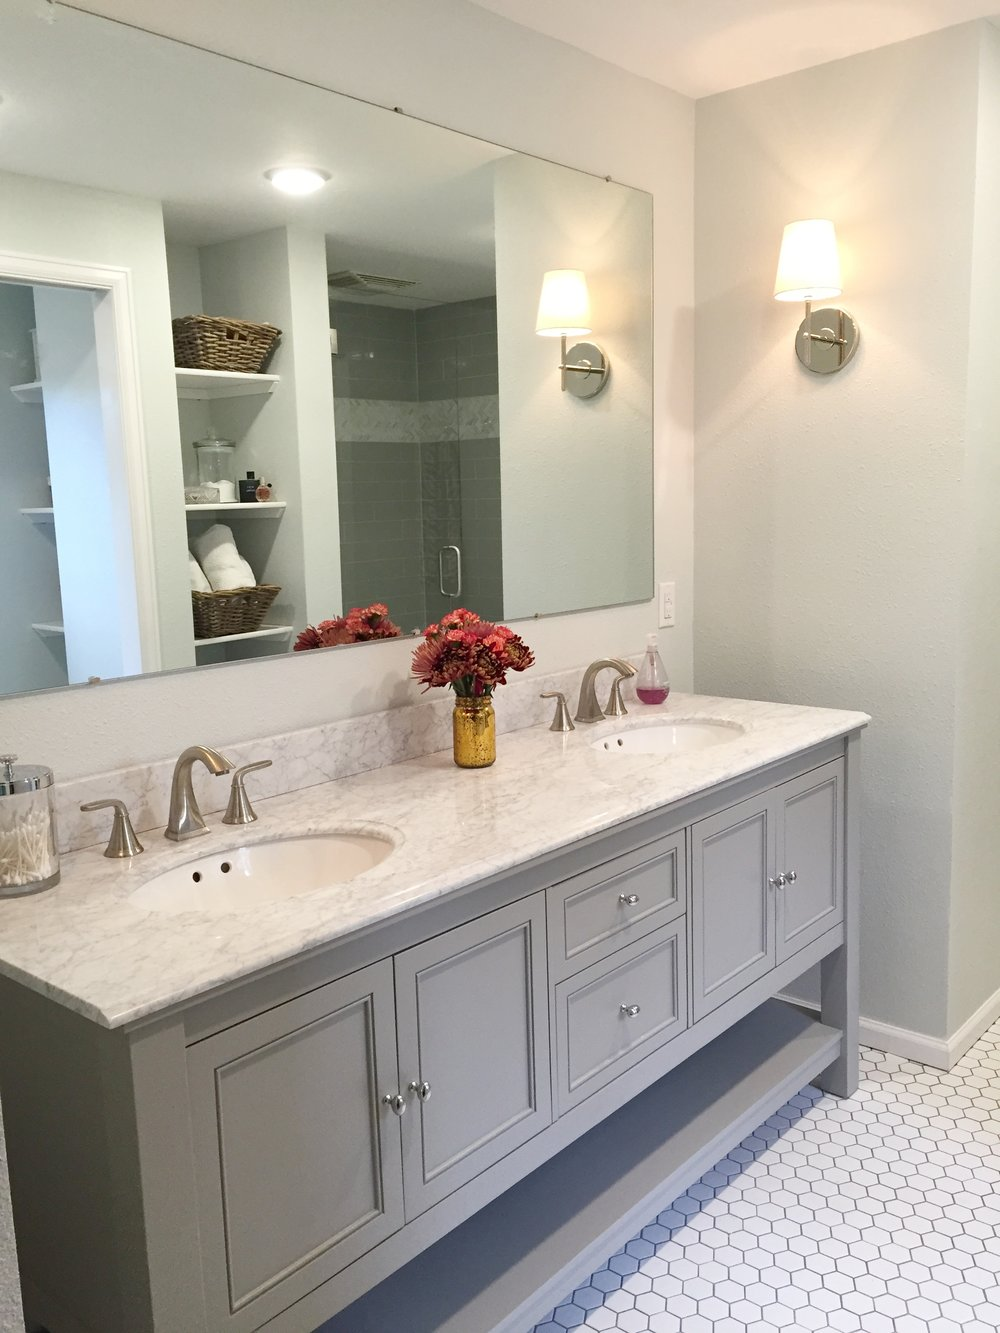 West elm bathroom cabinet - Sconces Are From West Elm Vanity Is From Home Depot